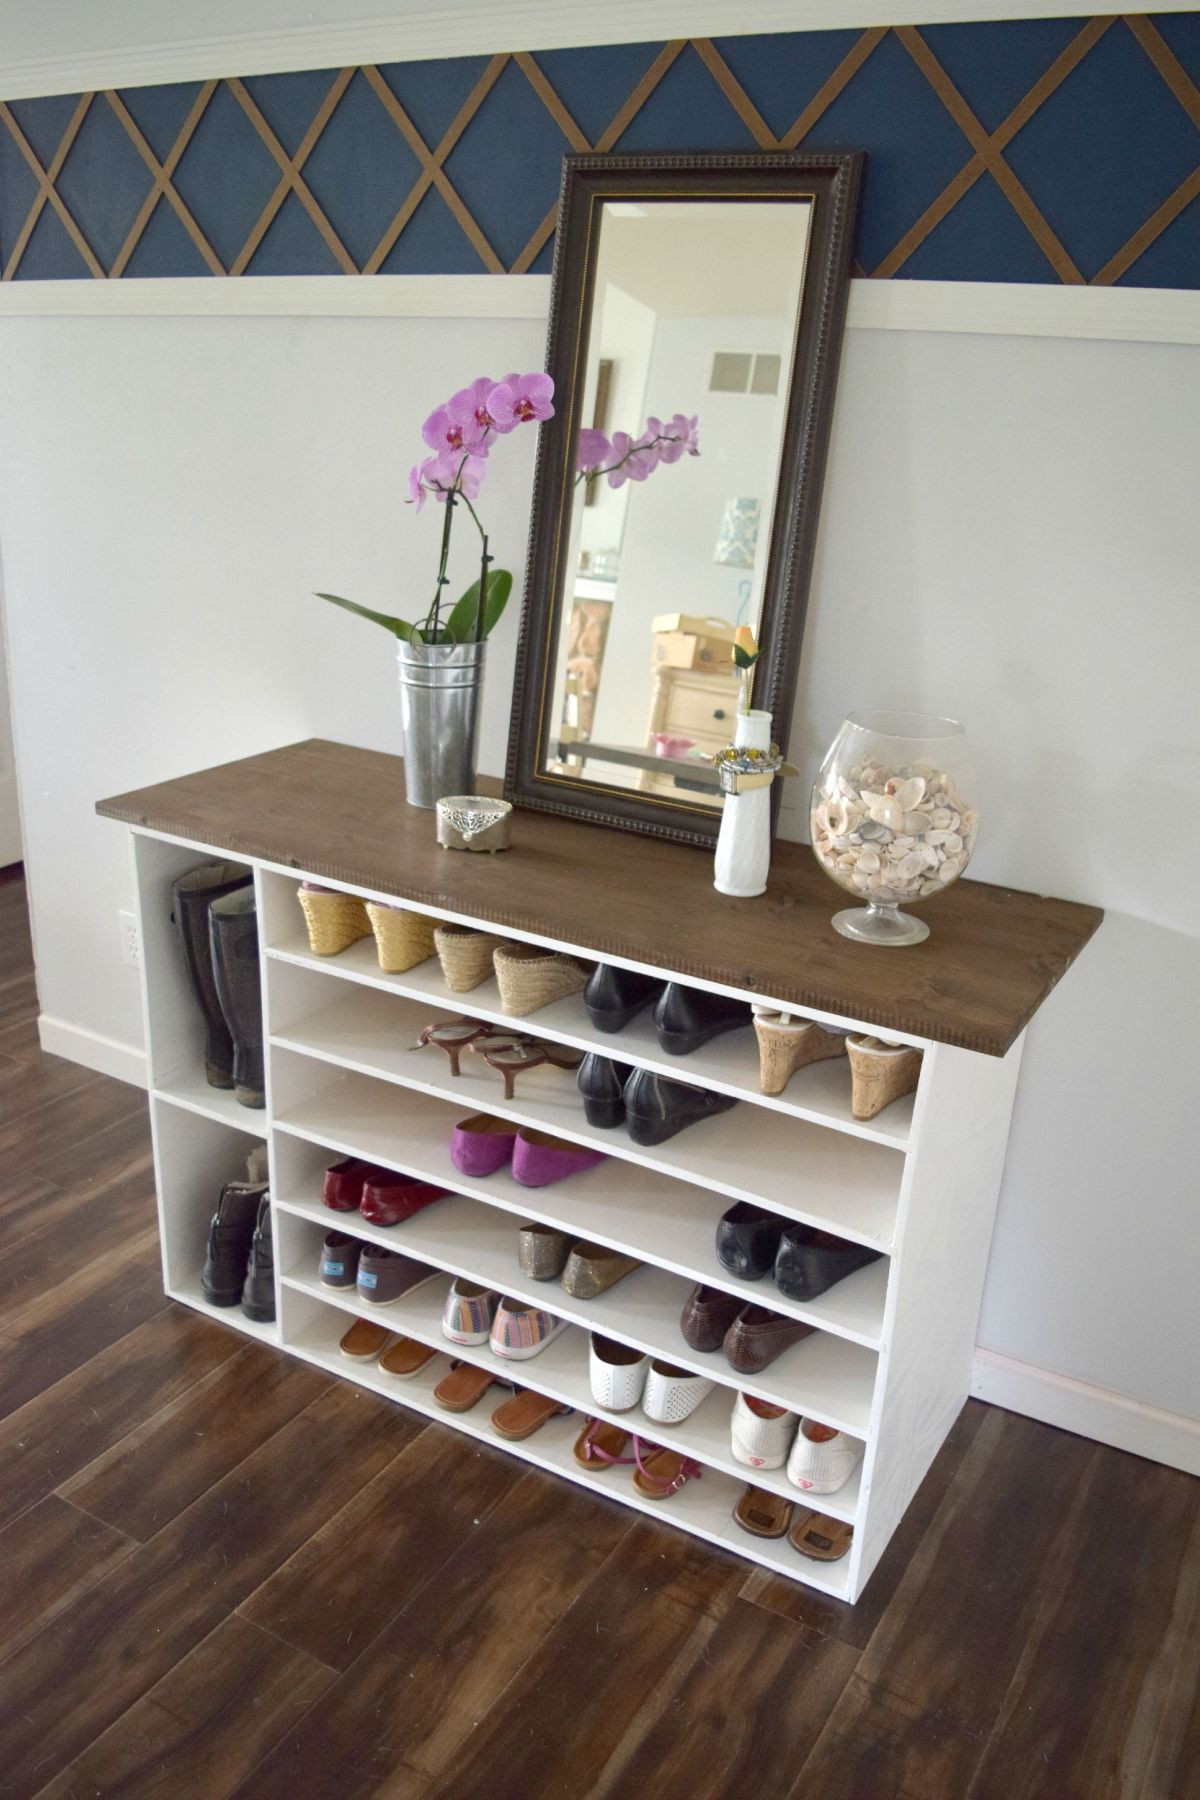 Best ideas about DIY Shoe Shelf . Save or Pin Stylish DIY Shoe Rack Perfect for Any Room Now.